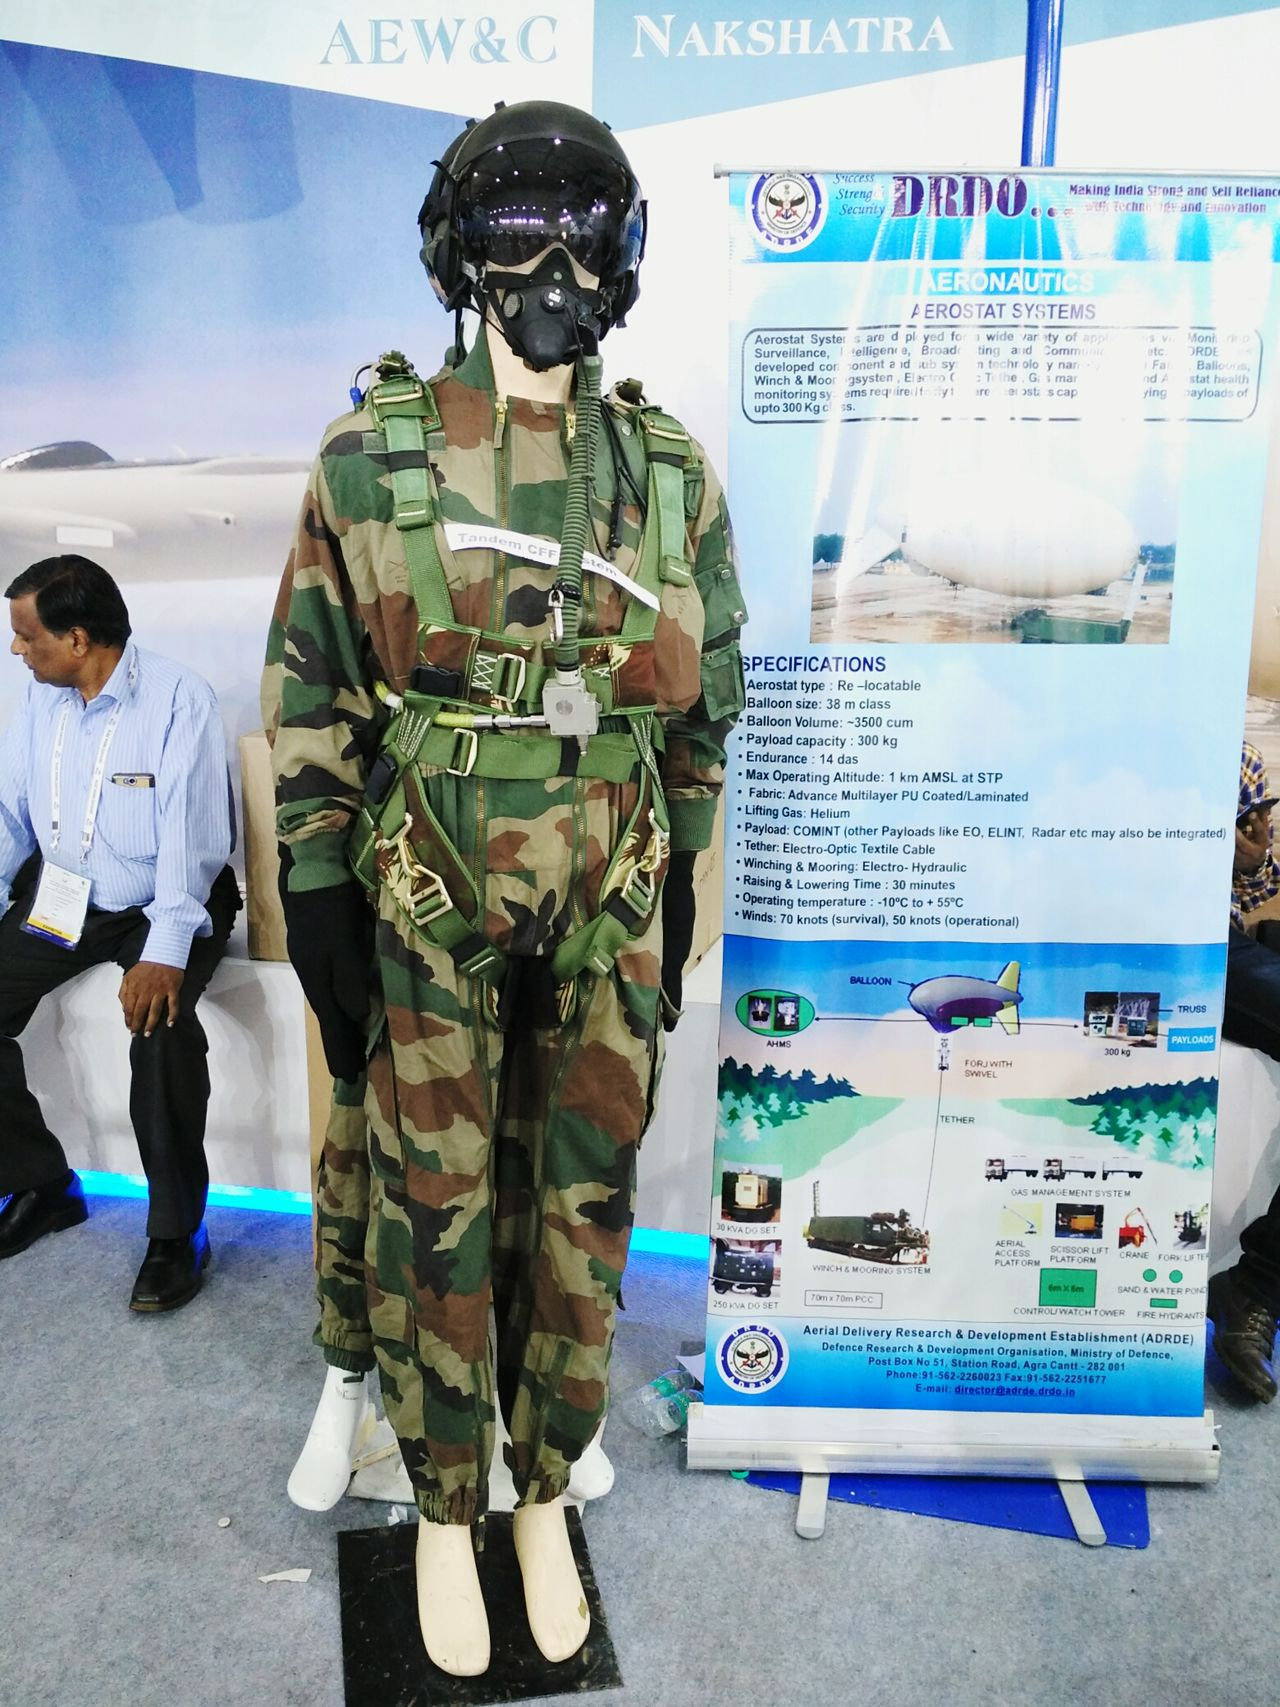 Tandem combat operations suit kept for display by DRDO at Defexpo India 2016 in Goa. Tandem Skydive Suit Jacket DRDO Uniforms Safety Army Indian Army Military Defence Exposition Defence Expo Defexpogoa2016 Mannequins Display Information Public Display Goa Goa India Defexpo India